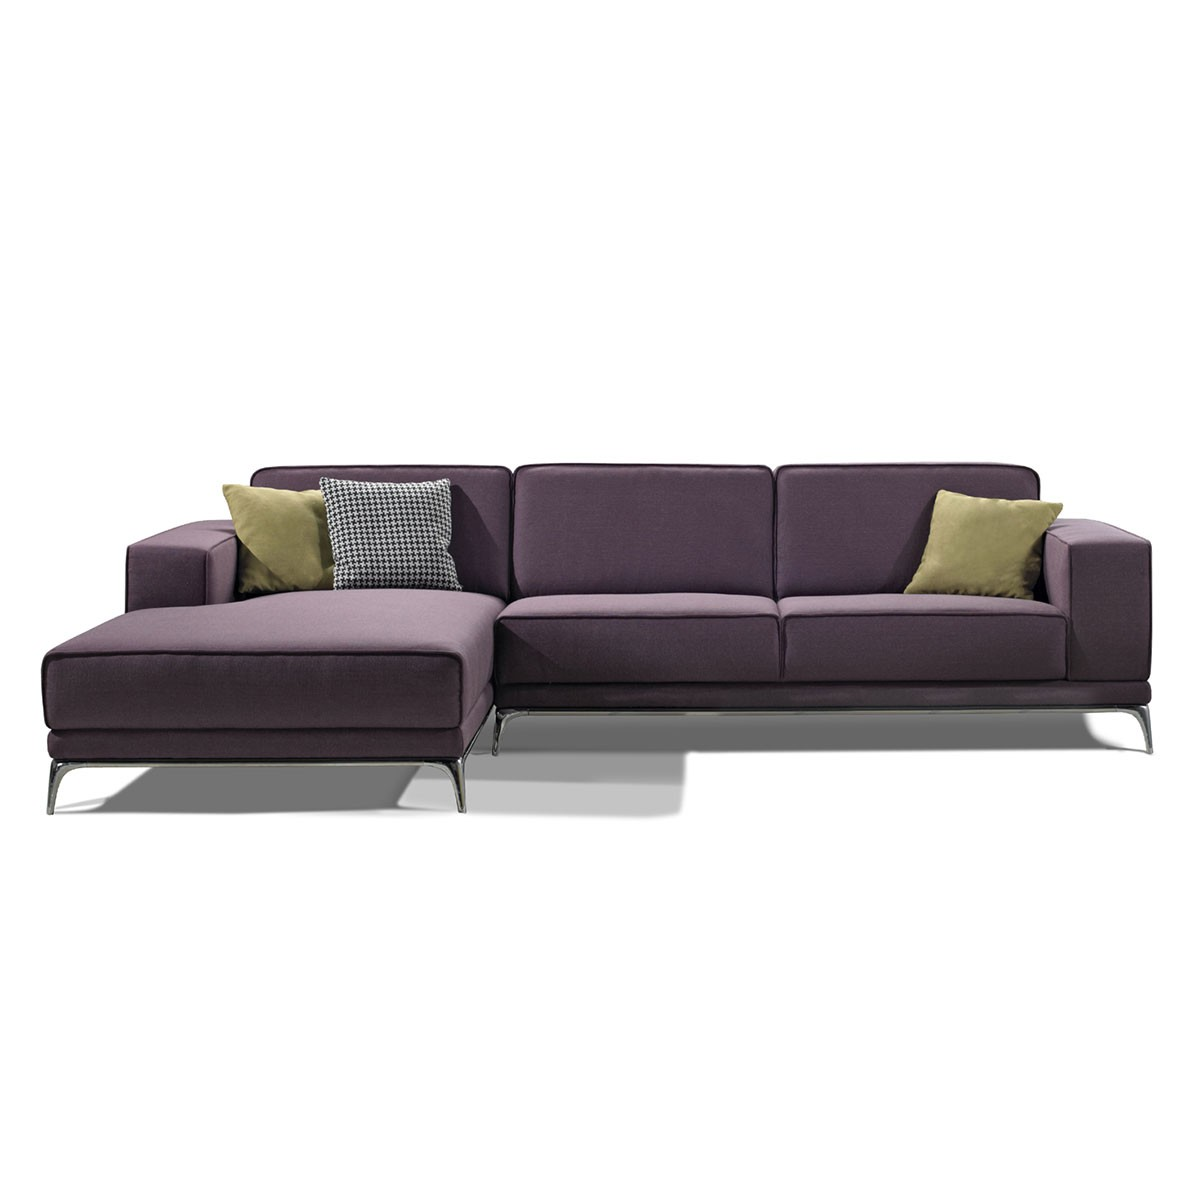 Fabric Left-facing Chaise Sectional with Pillows - Purple (BO-9981)